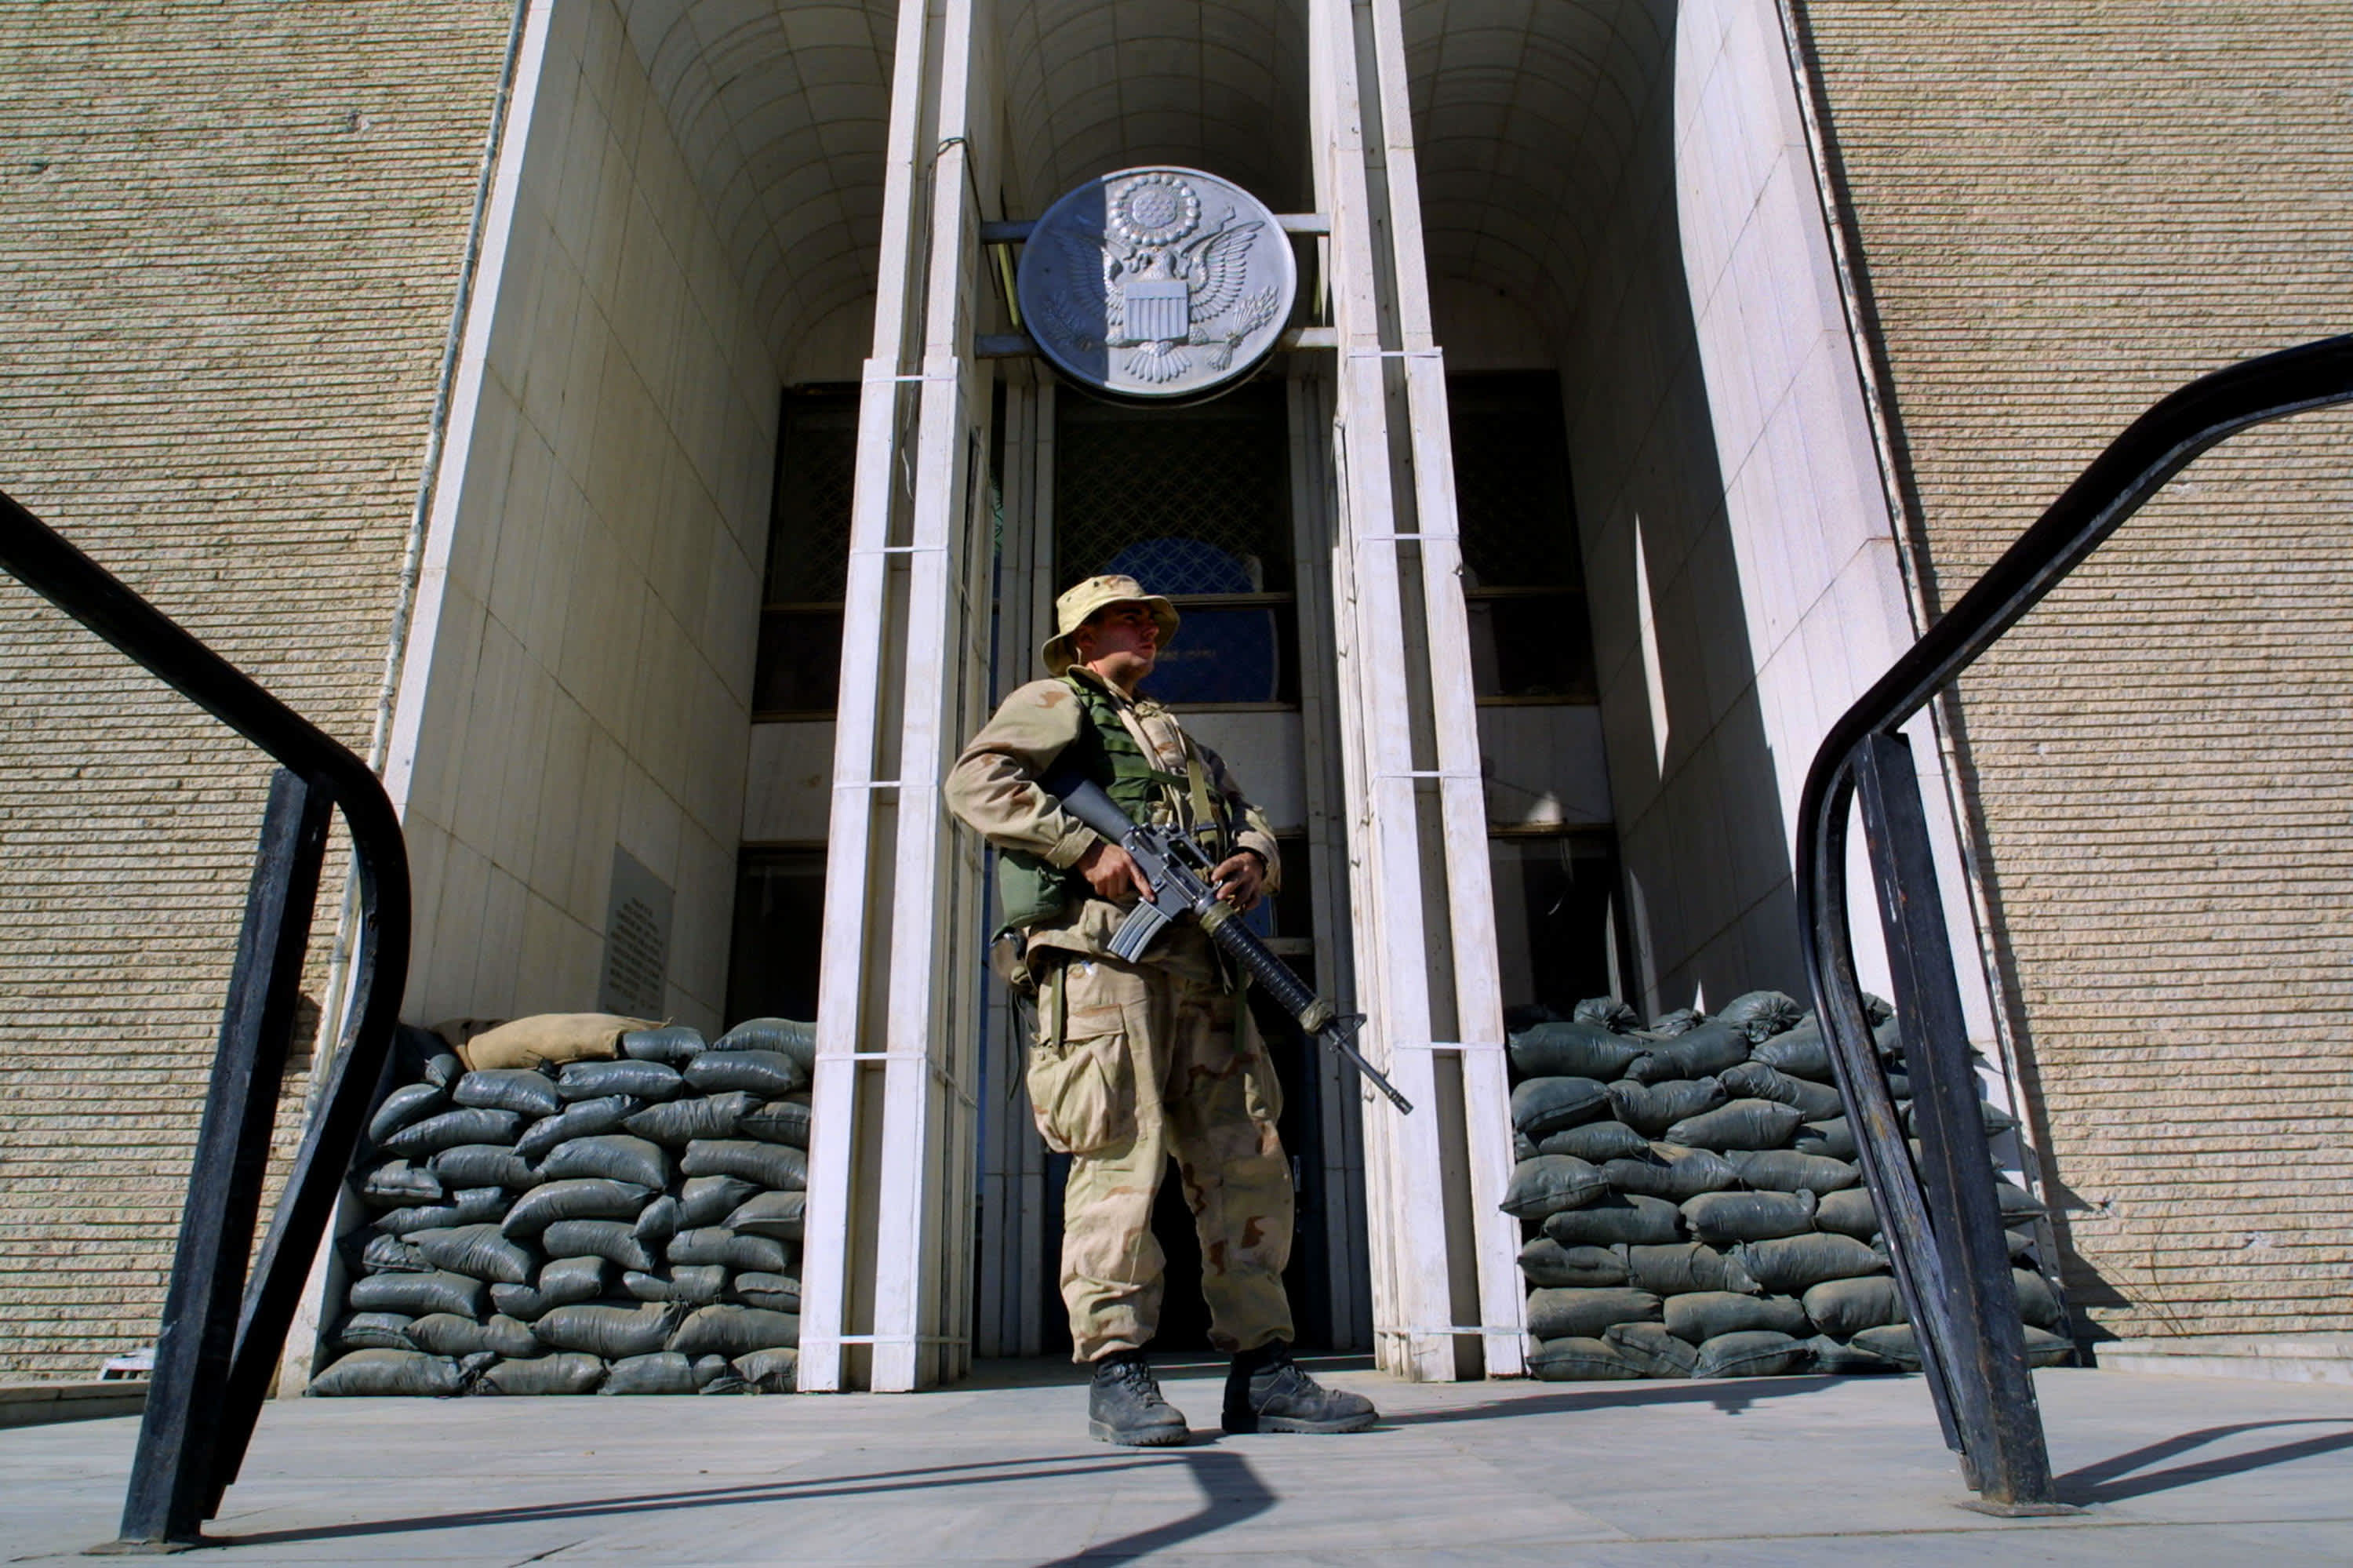 Covid outbreak forces lockdown at U.S. Embassy in Kabul as cases surge in Afghanistan